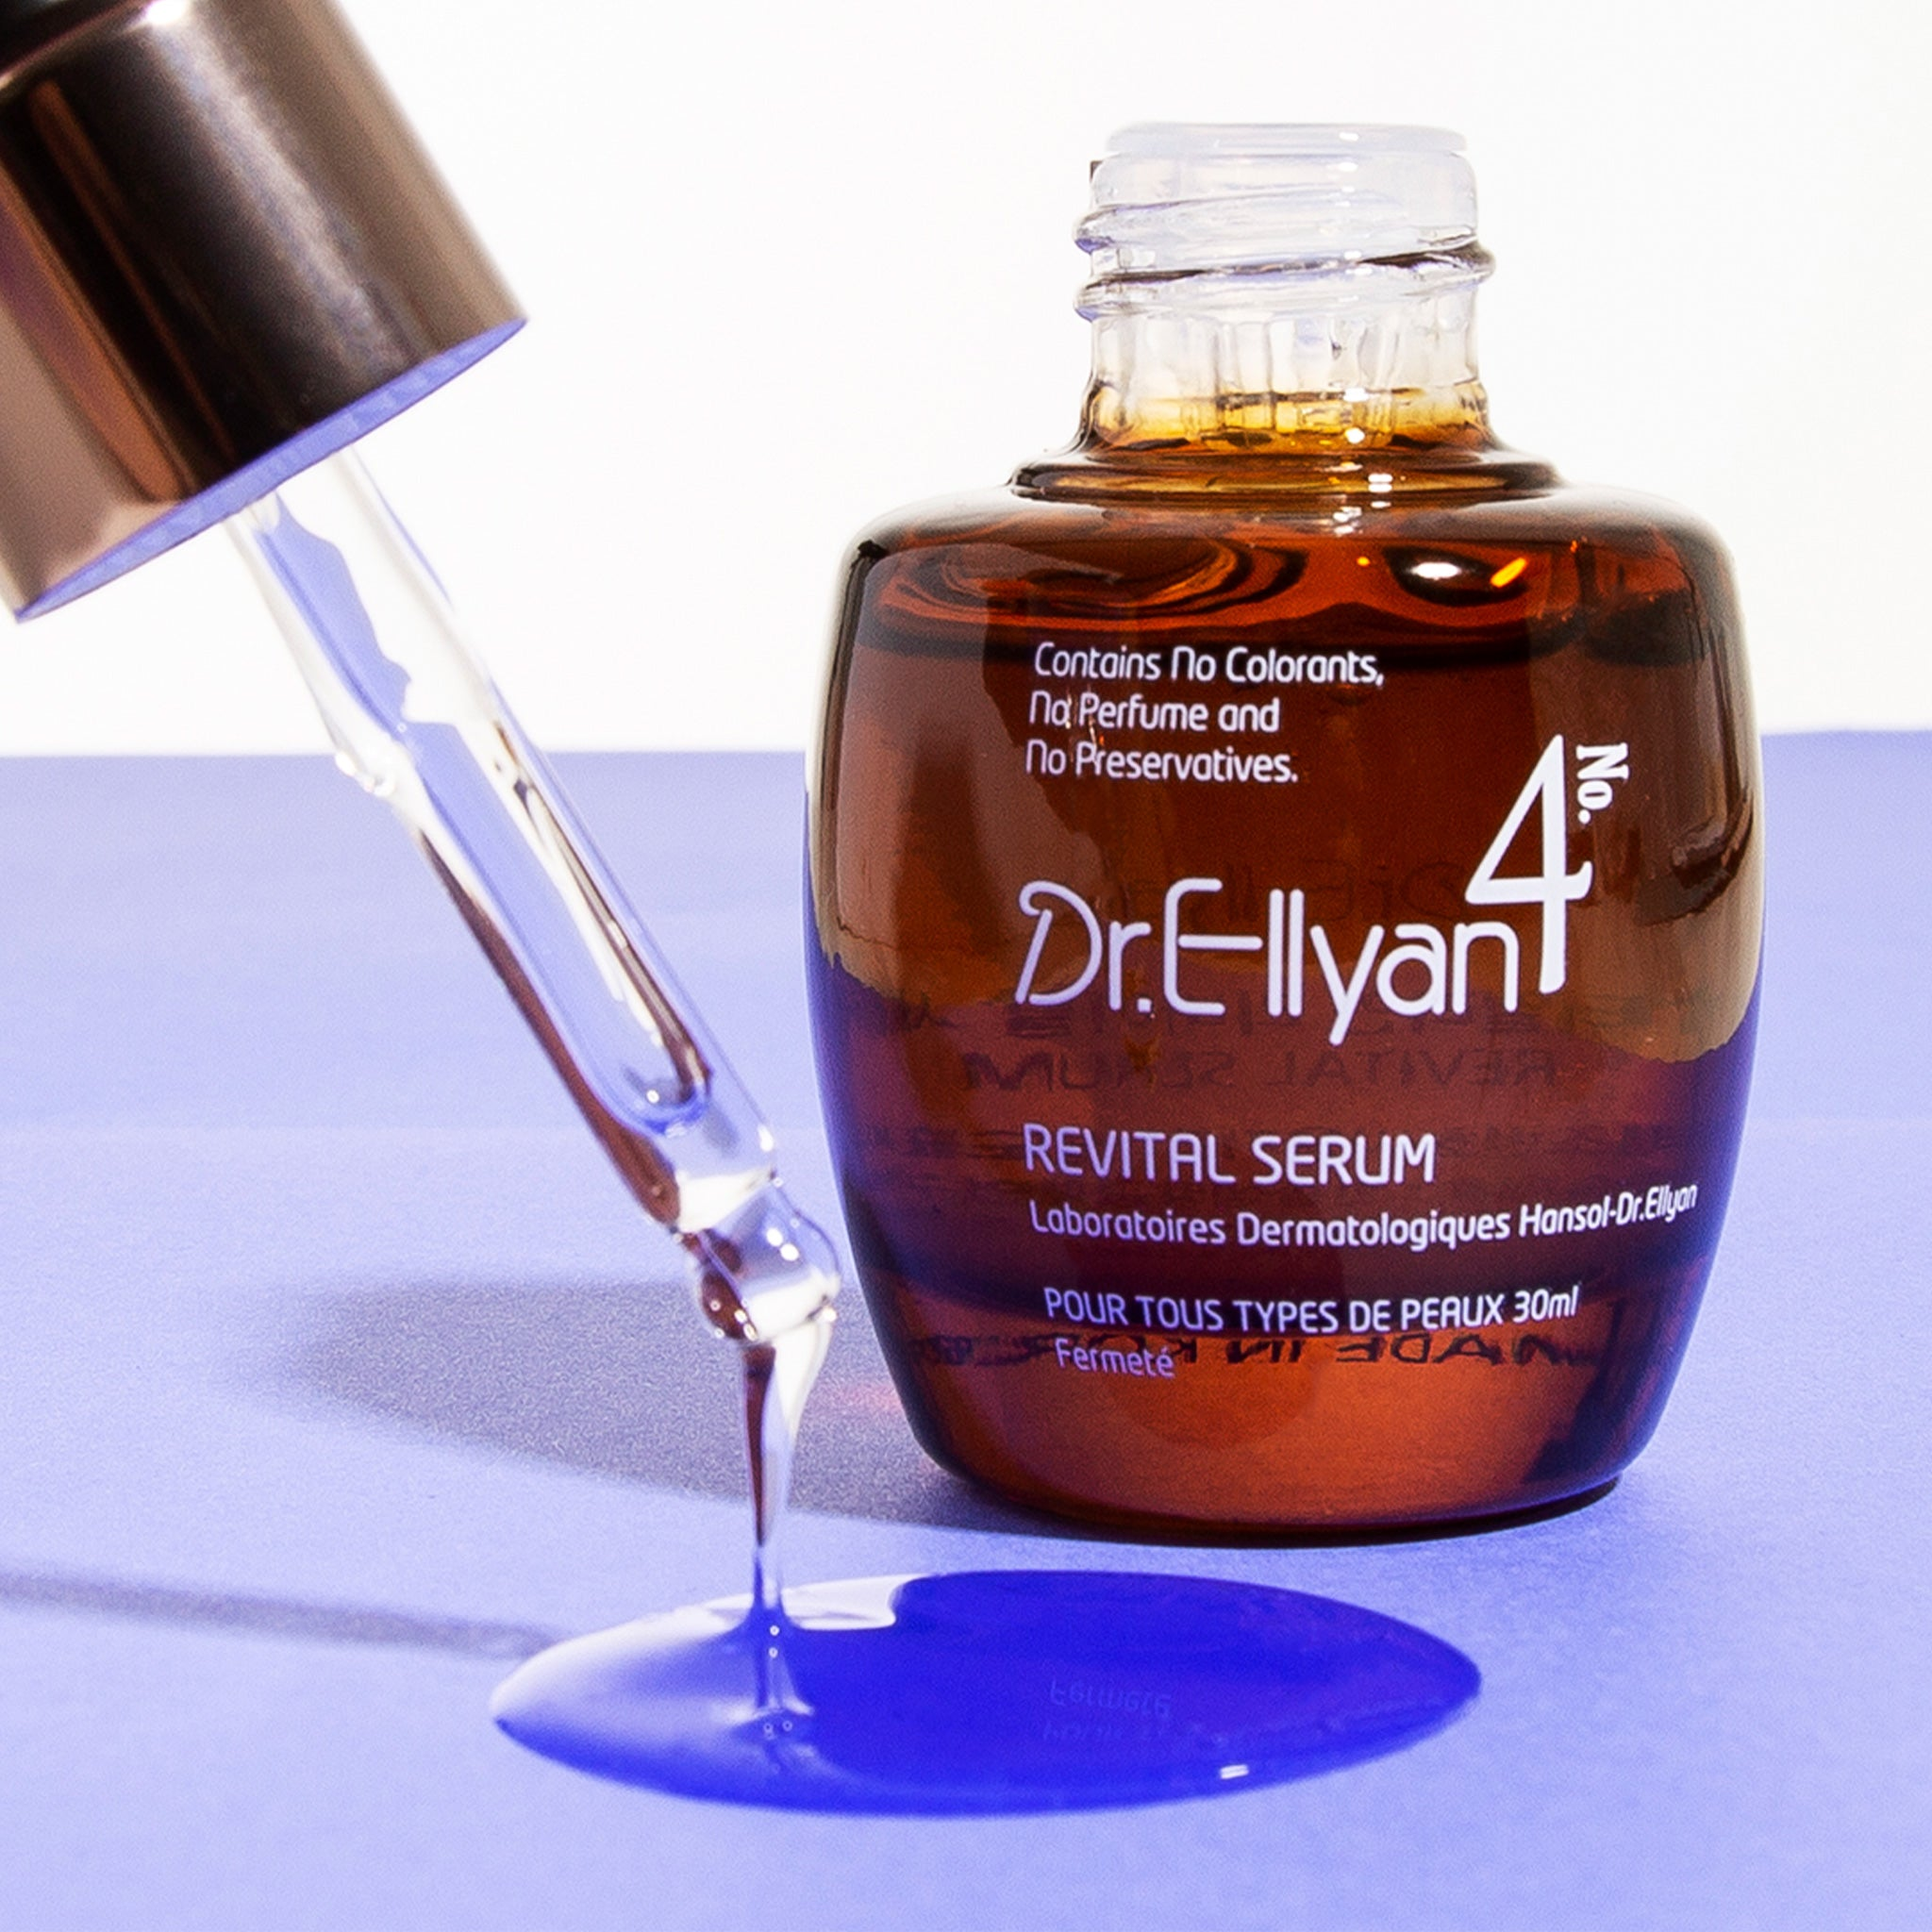 No. 4 Revital Serum